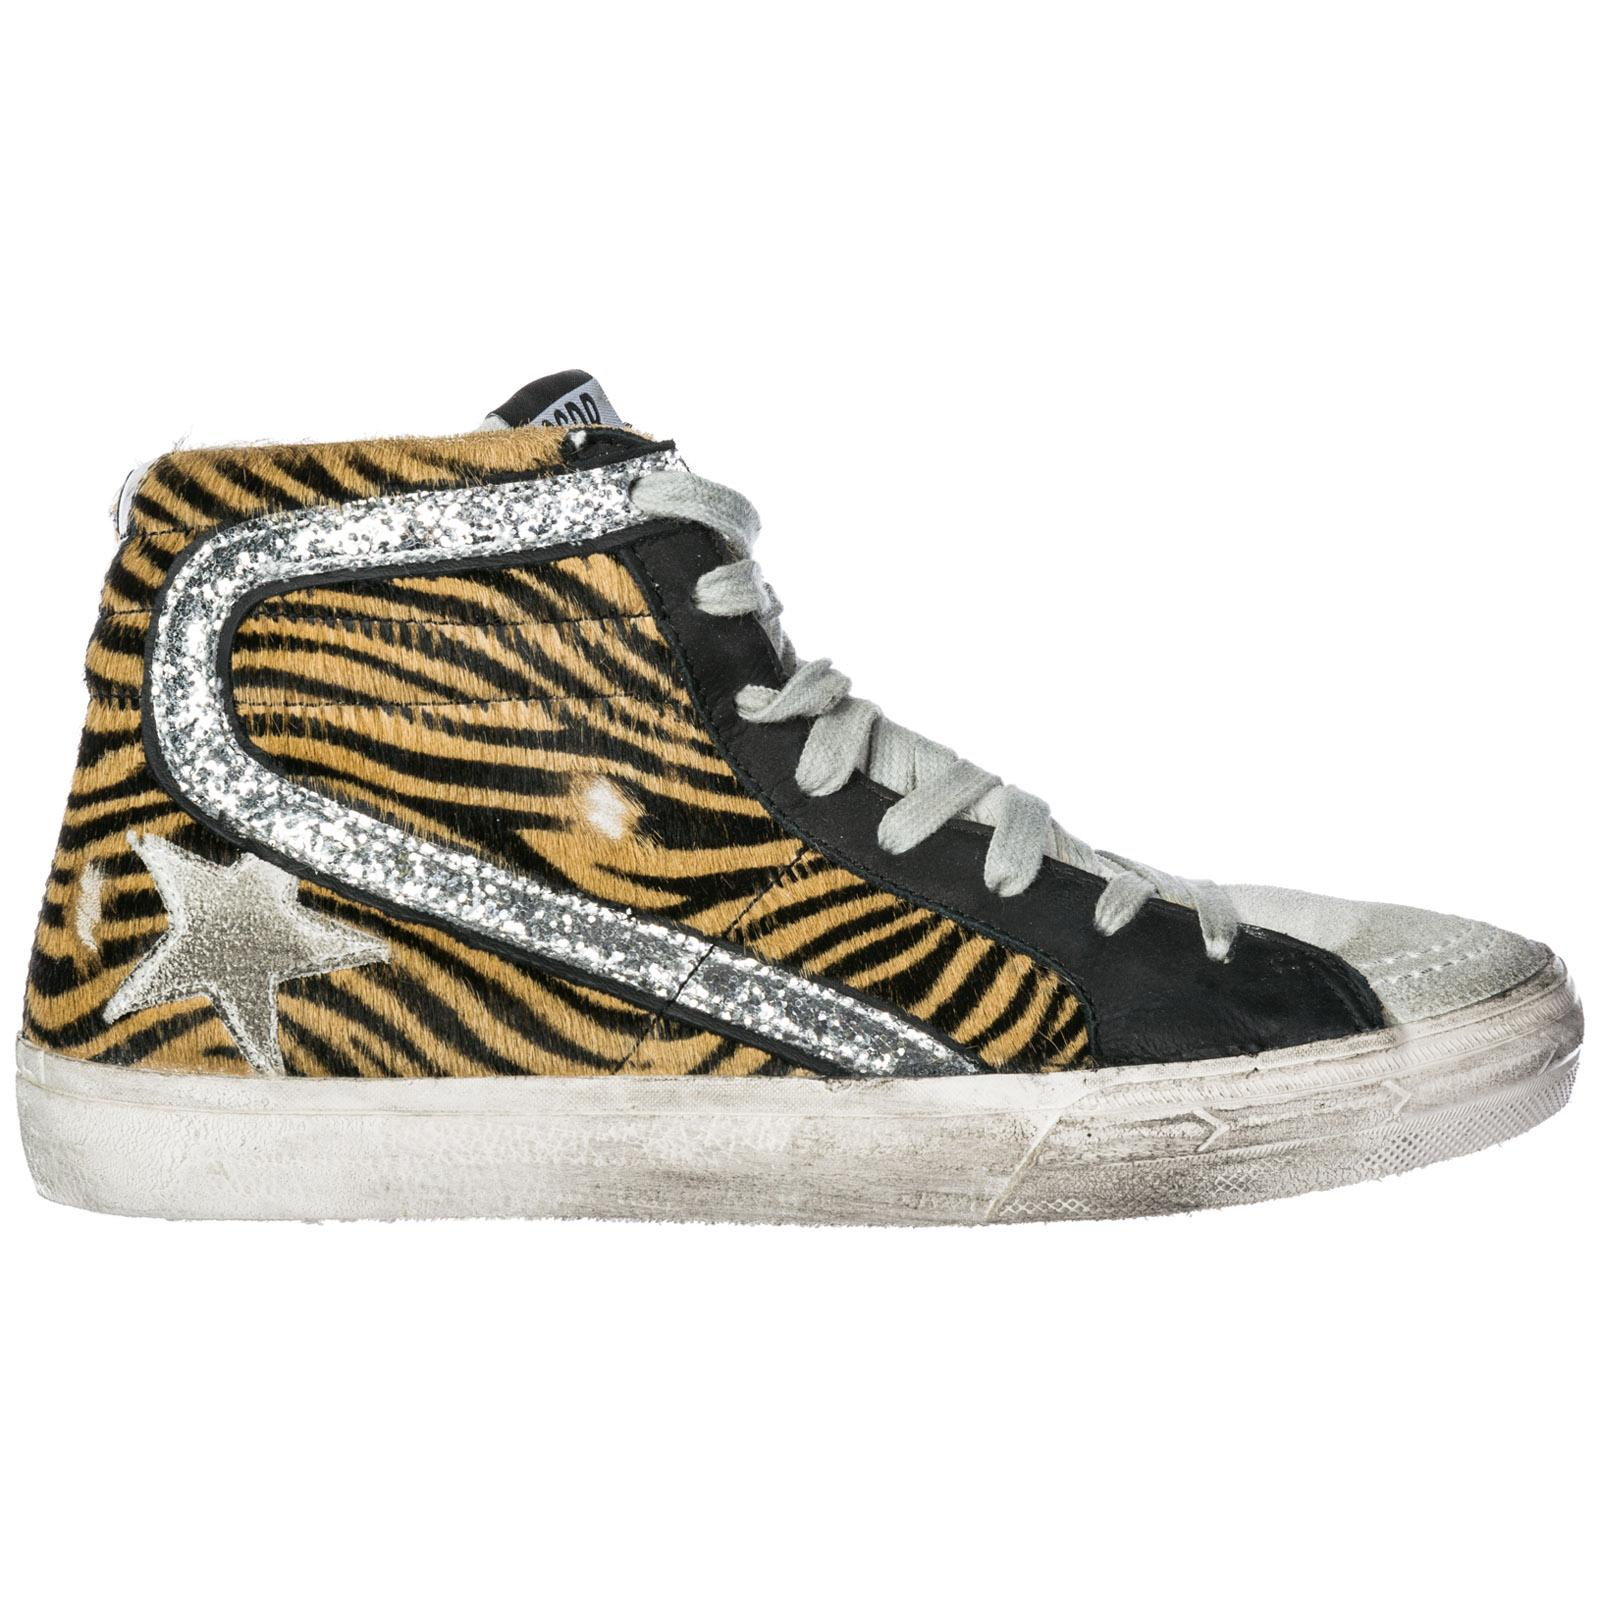 Golden Goose Women's Shoes High Top Suede Trainers Sneakers Slide In Animal Print